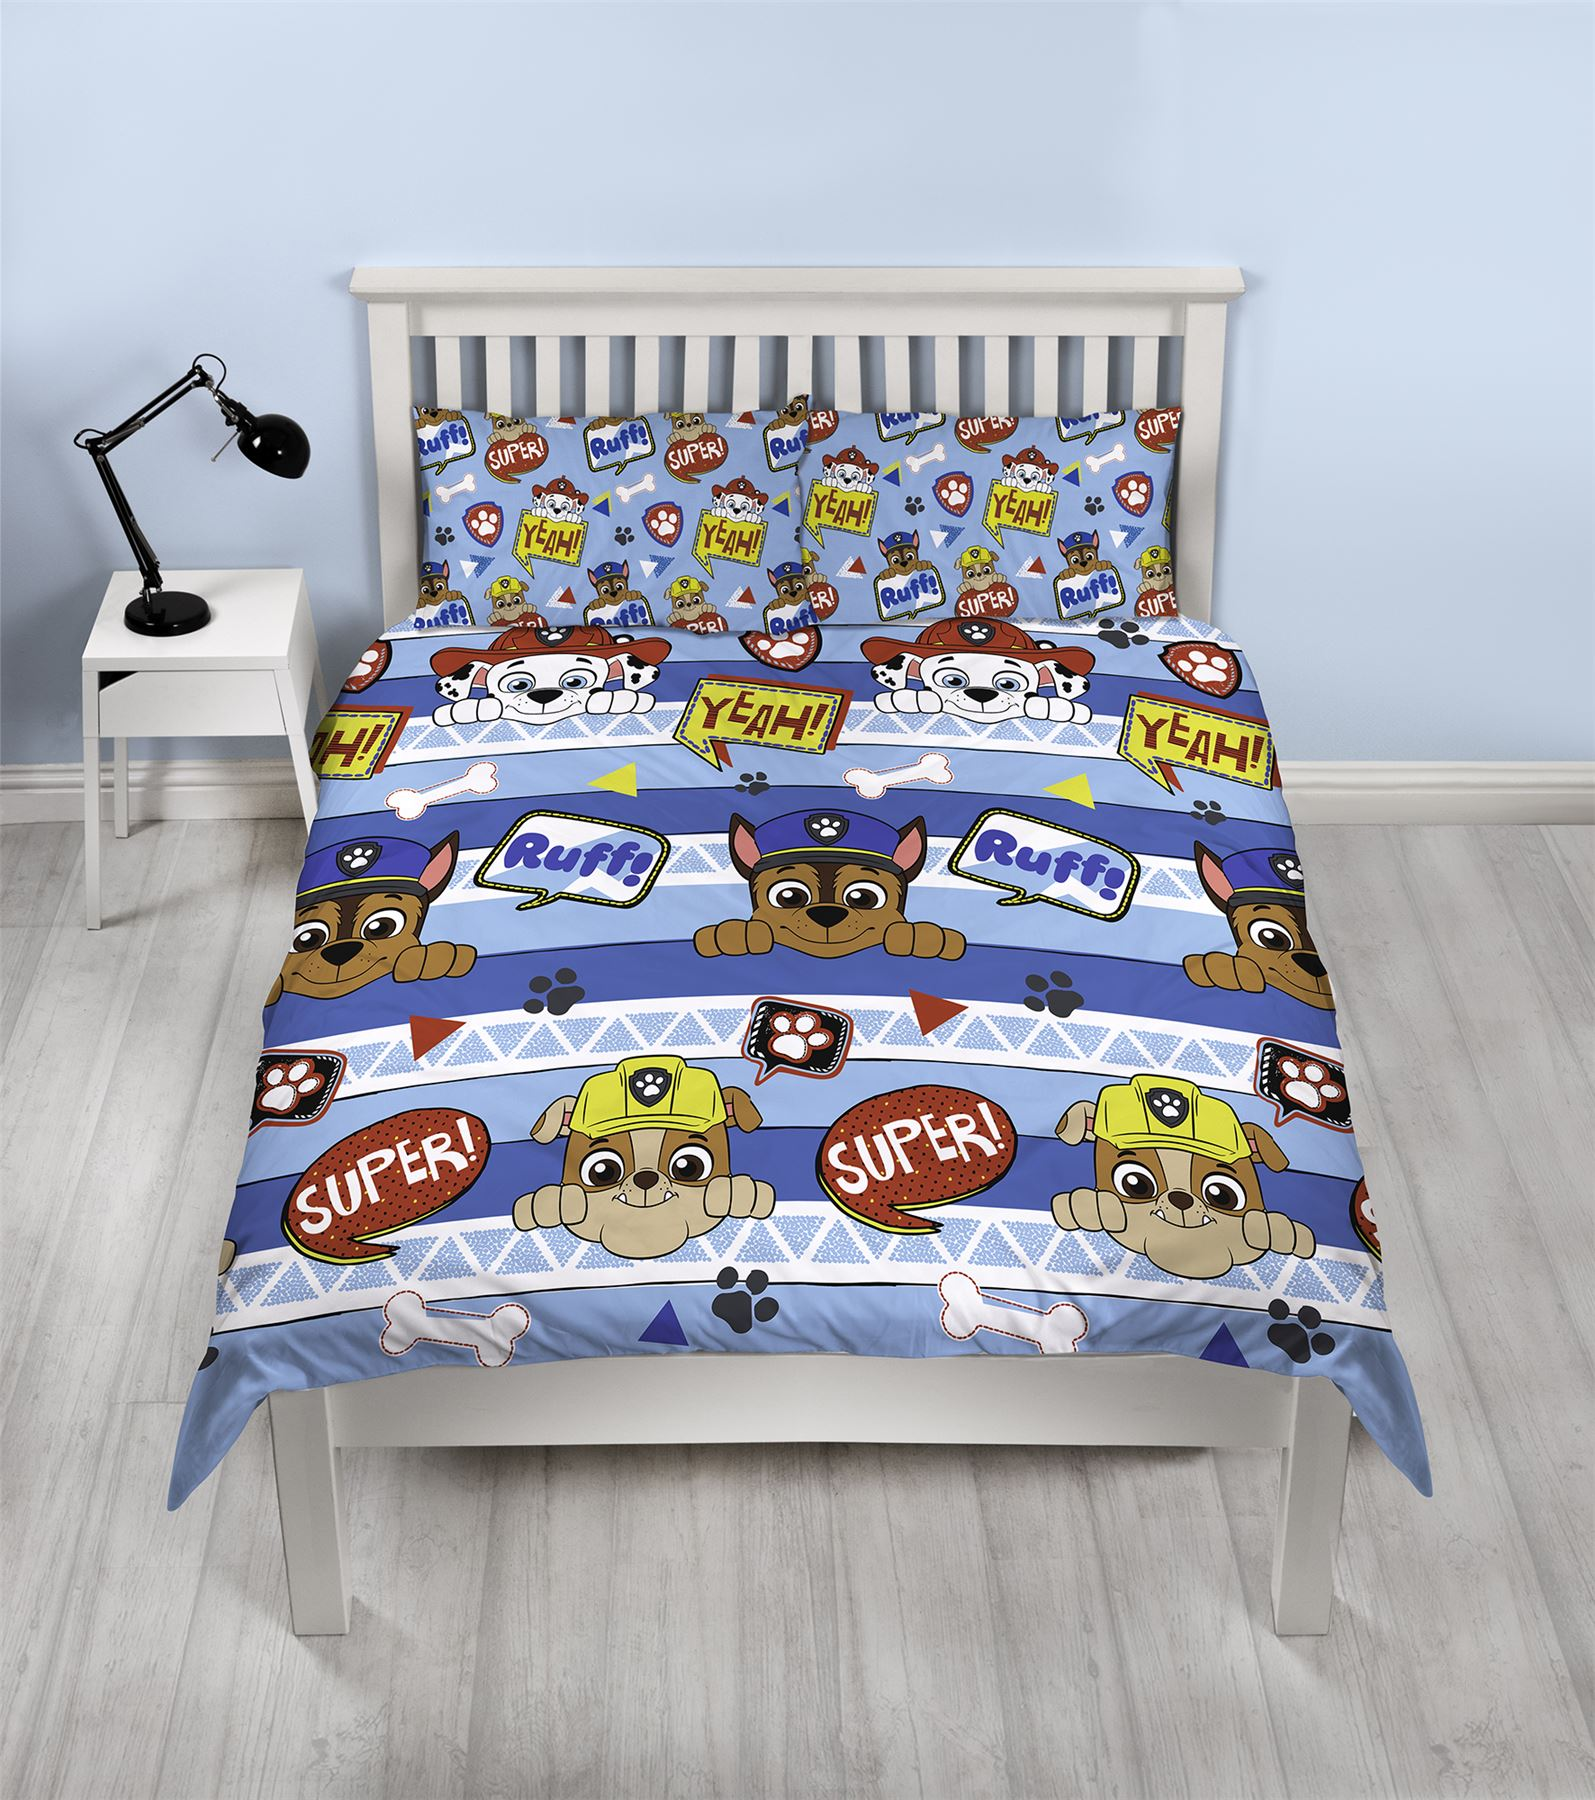 Official-Paw-Patrol-Licensed-Duvet-Covers-Single-Double-Chase-Skye-Marshall thumbnail 25